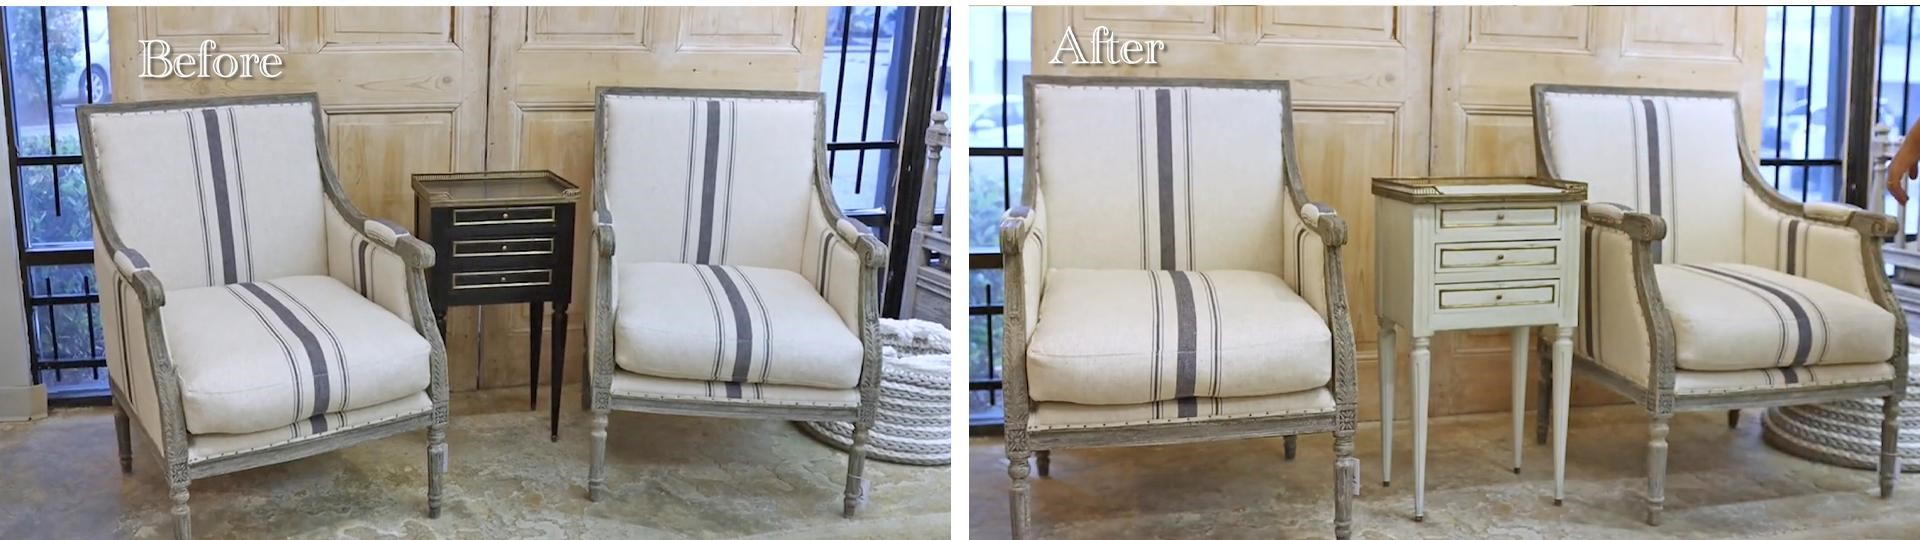 Before and after furniture transformation using Amitha Verma Chalk Finish Paint.